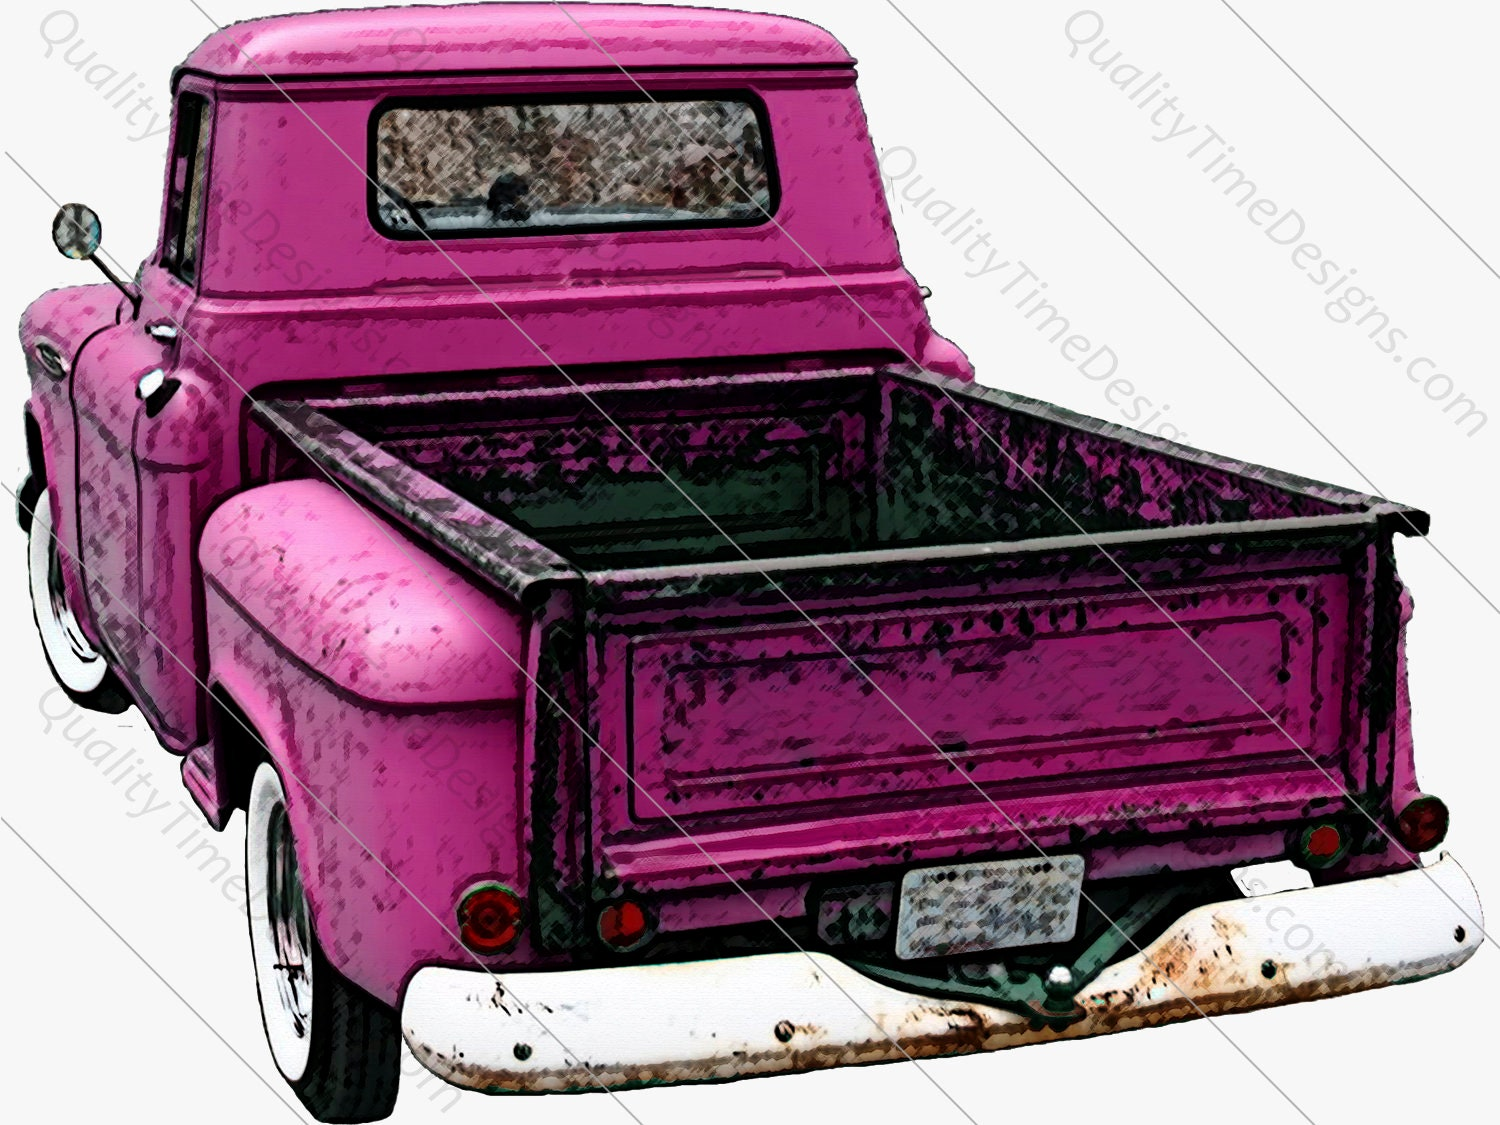 Pink Drawing Watercolor Vintage Truck Clipart Rusty Rustic Country Chevy Pickup Retro Car Hand Painted Clip Art Graphic Design